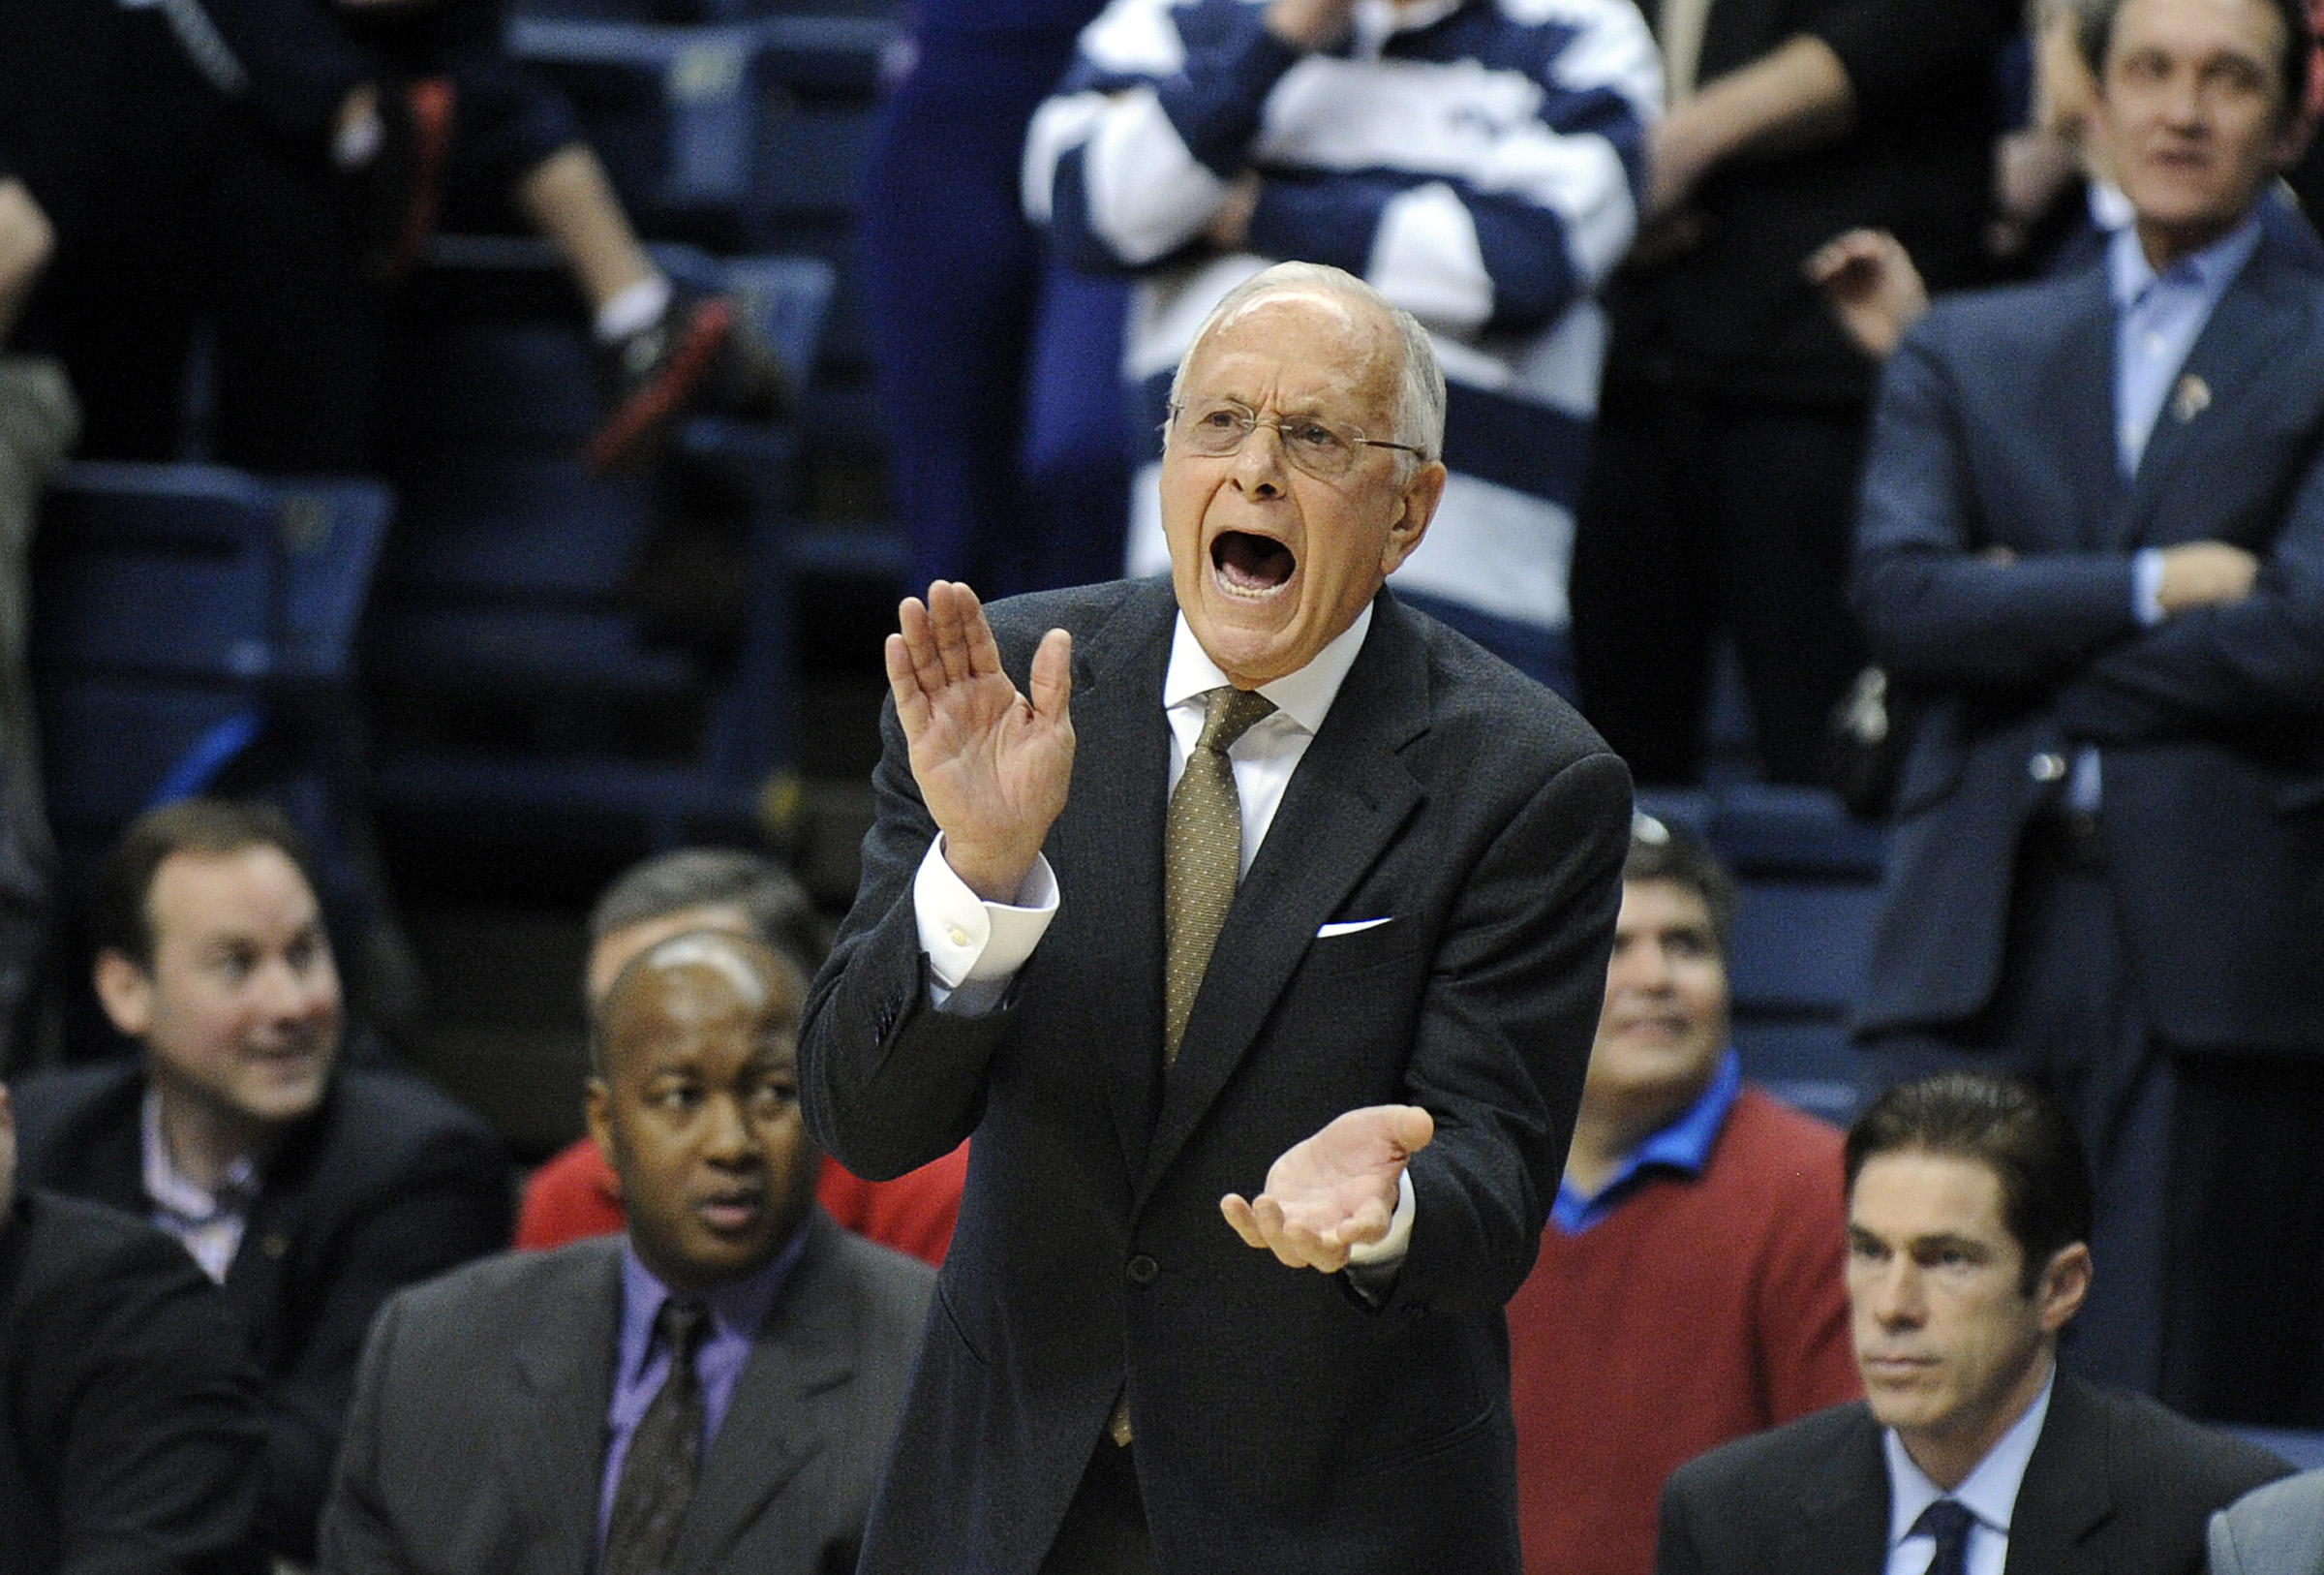 SMU head coach Larry Brown encourages his team during the first half of SMU's 64-55 victory over Connecticut in an NCAA college basketball game in Storrs, Conn., Sunday, Feb. 23, 2014